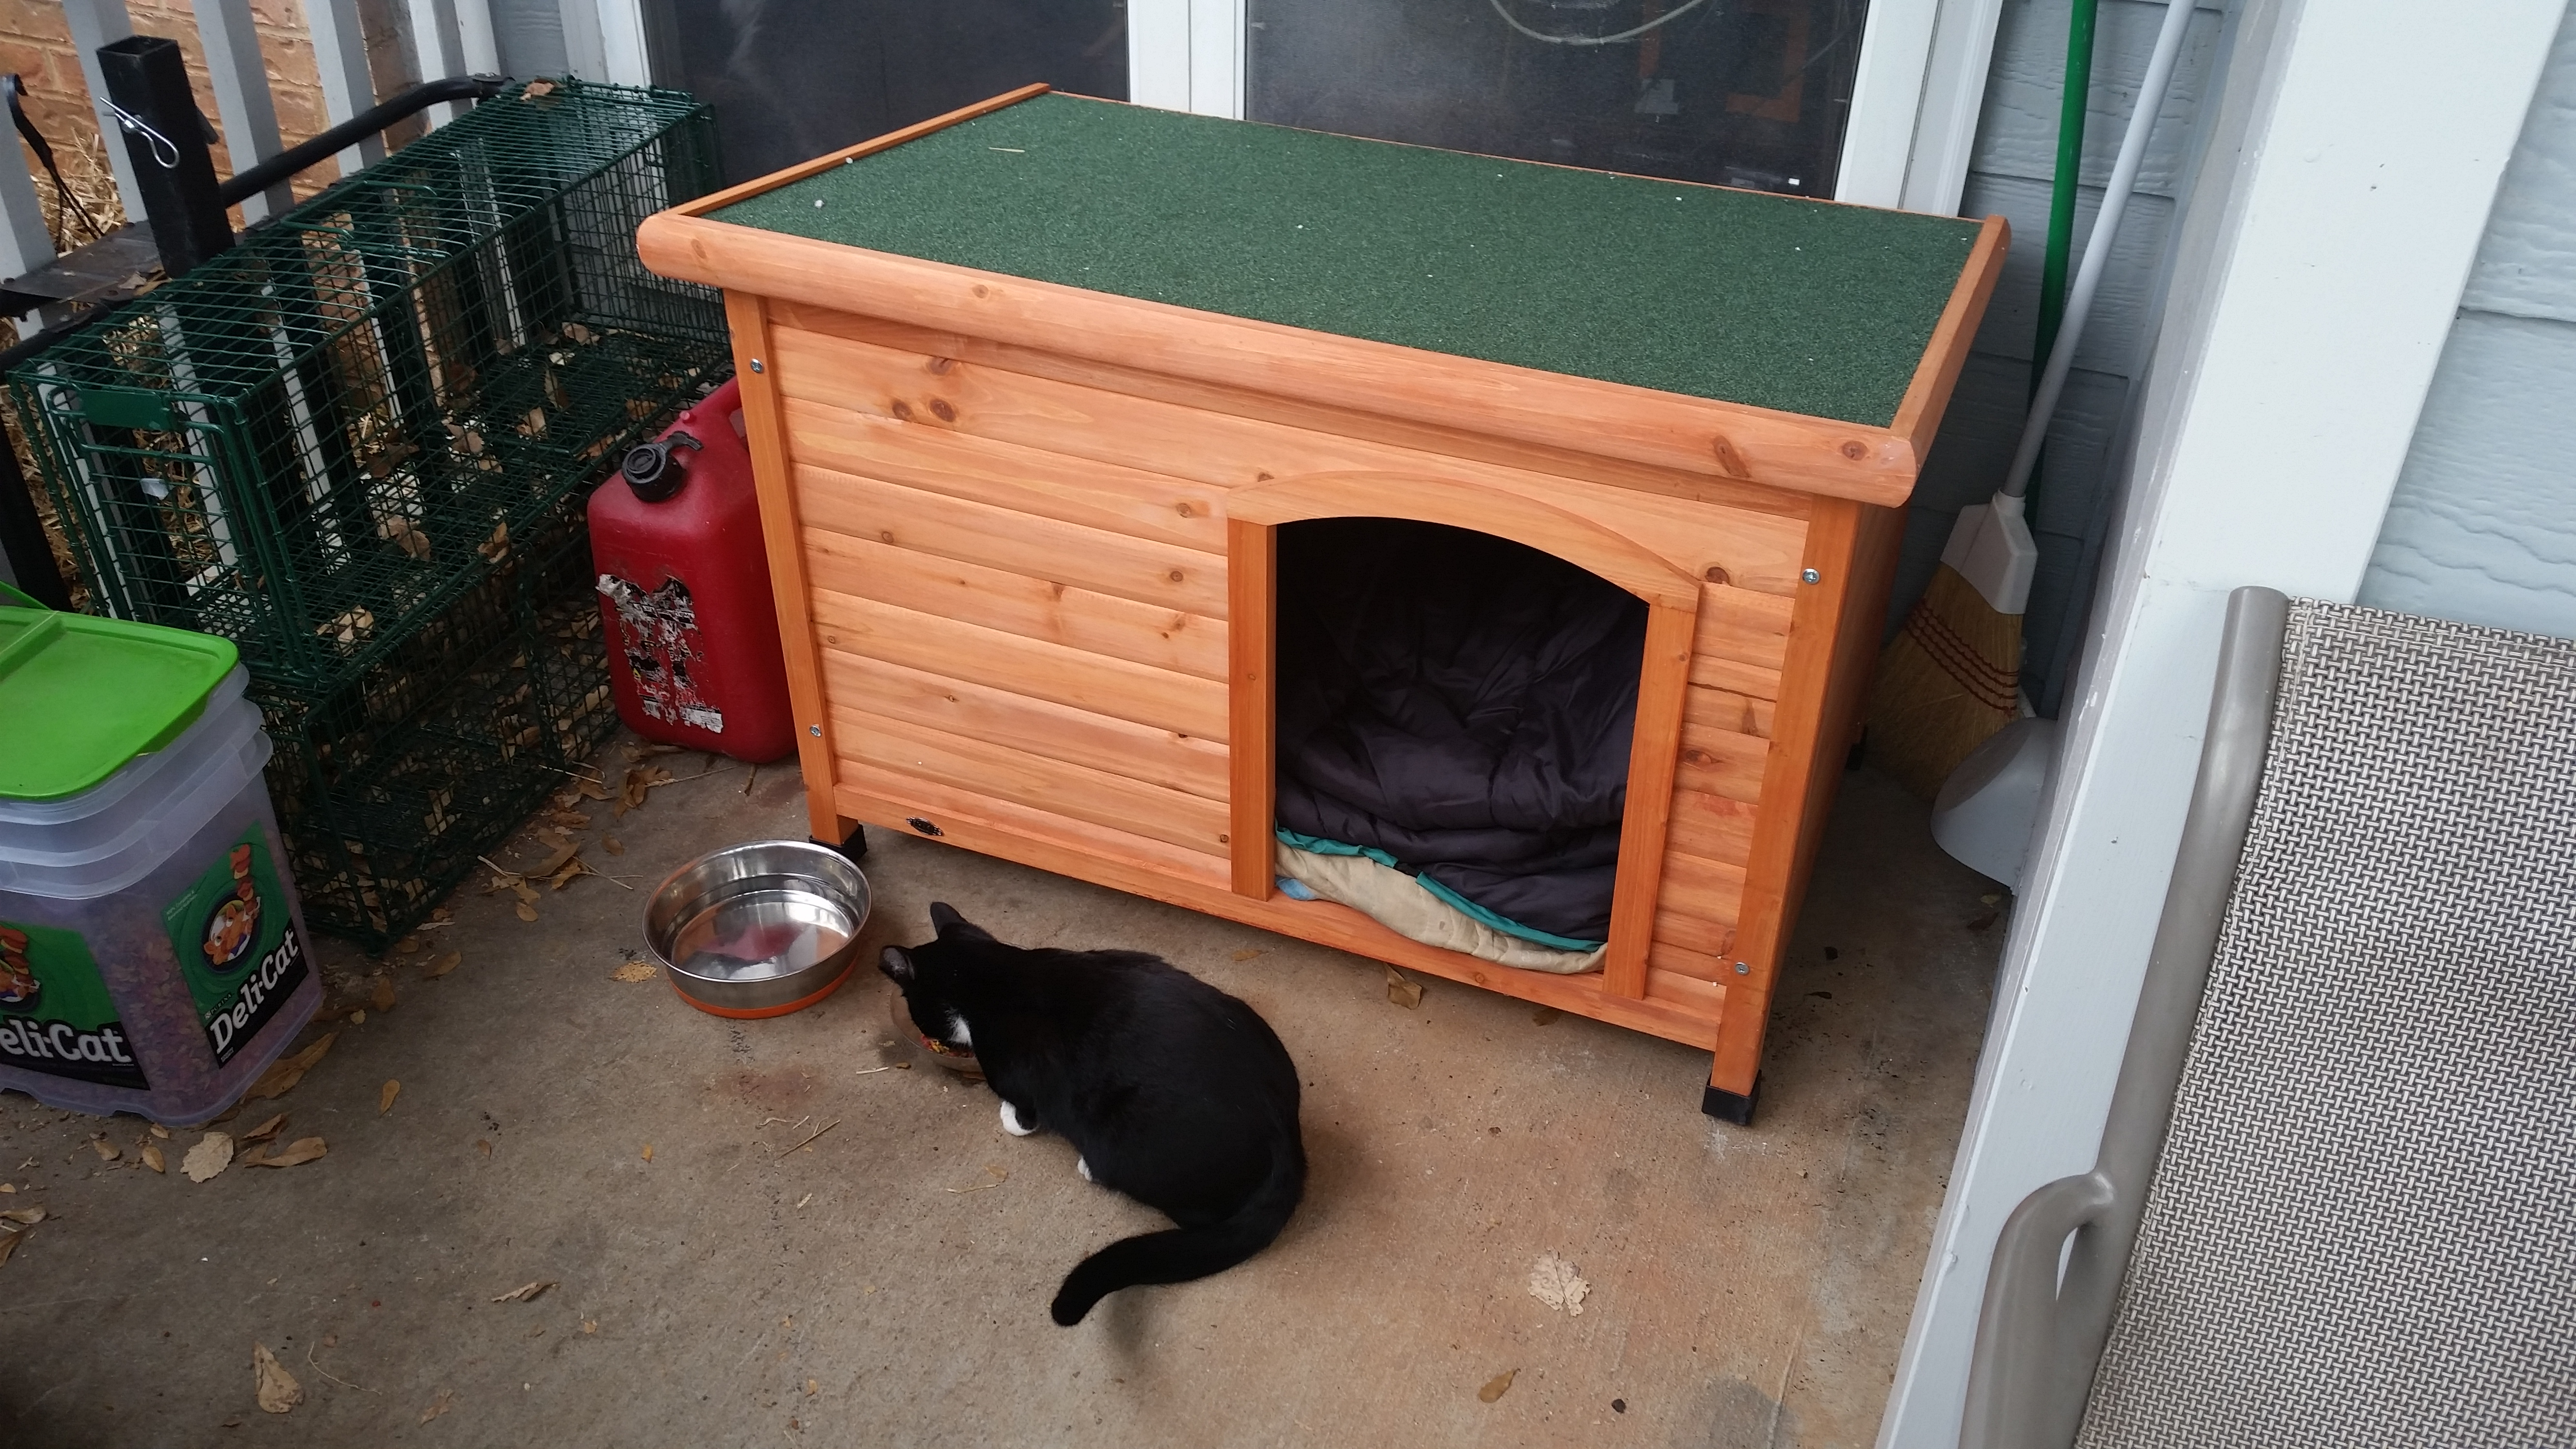 Tennessee inspects his new cathouse